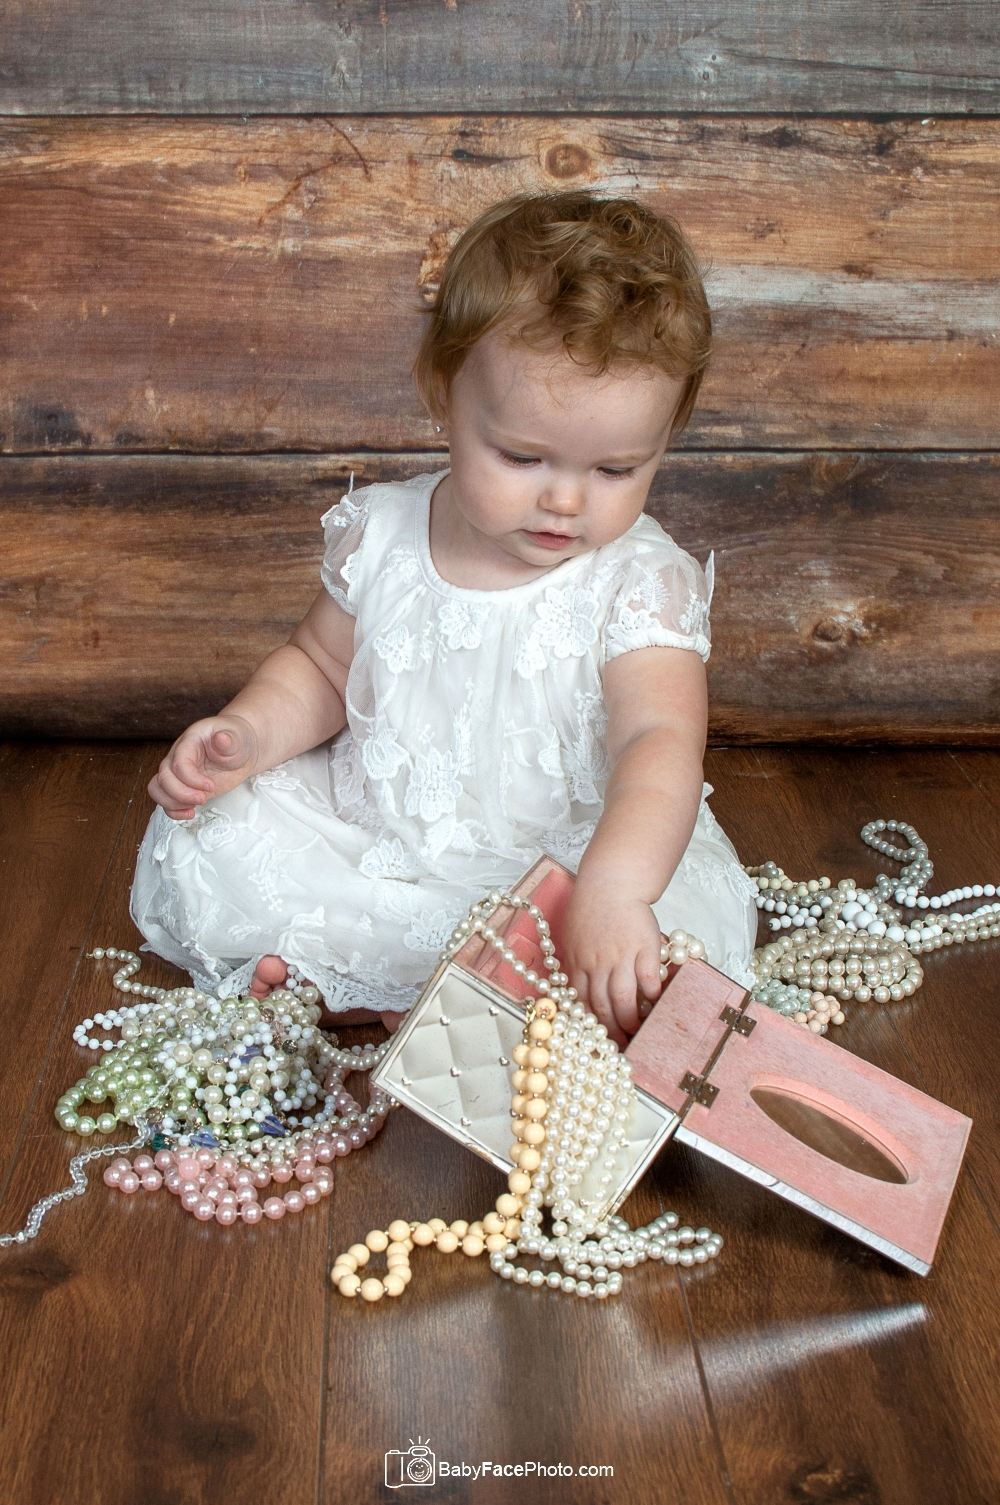 one year old girl playing with jewelry box and beads